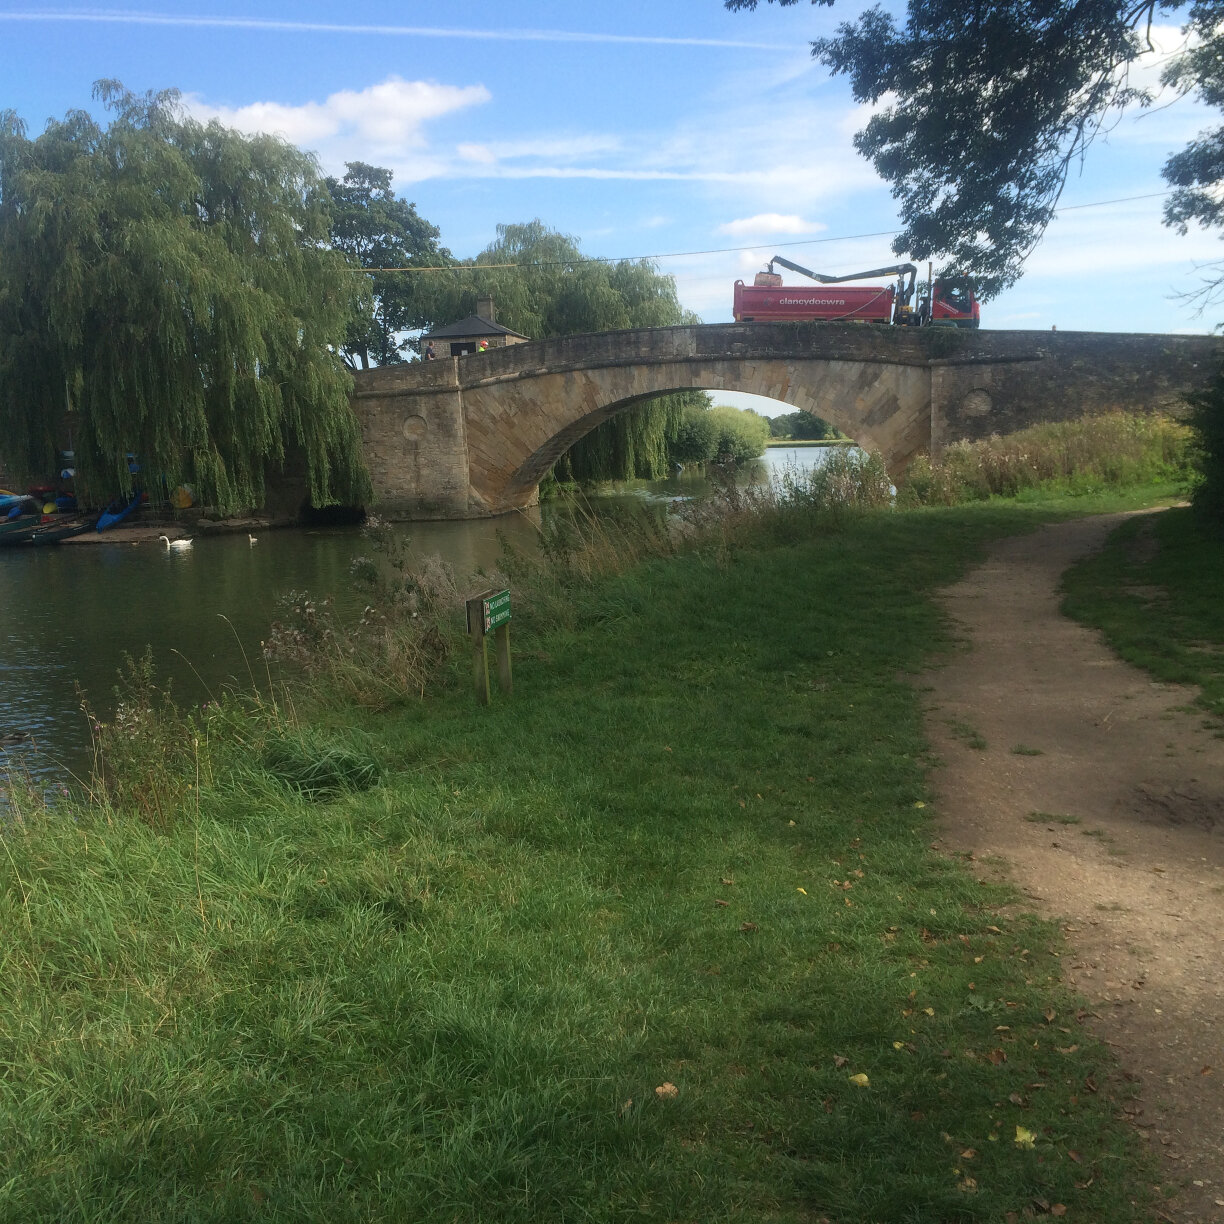 From Cricklade to Lechlade (14)